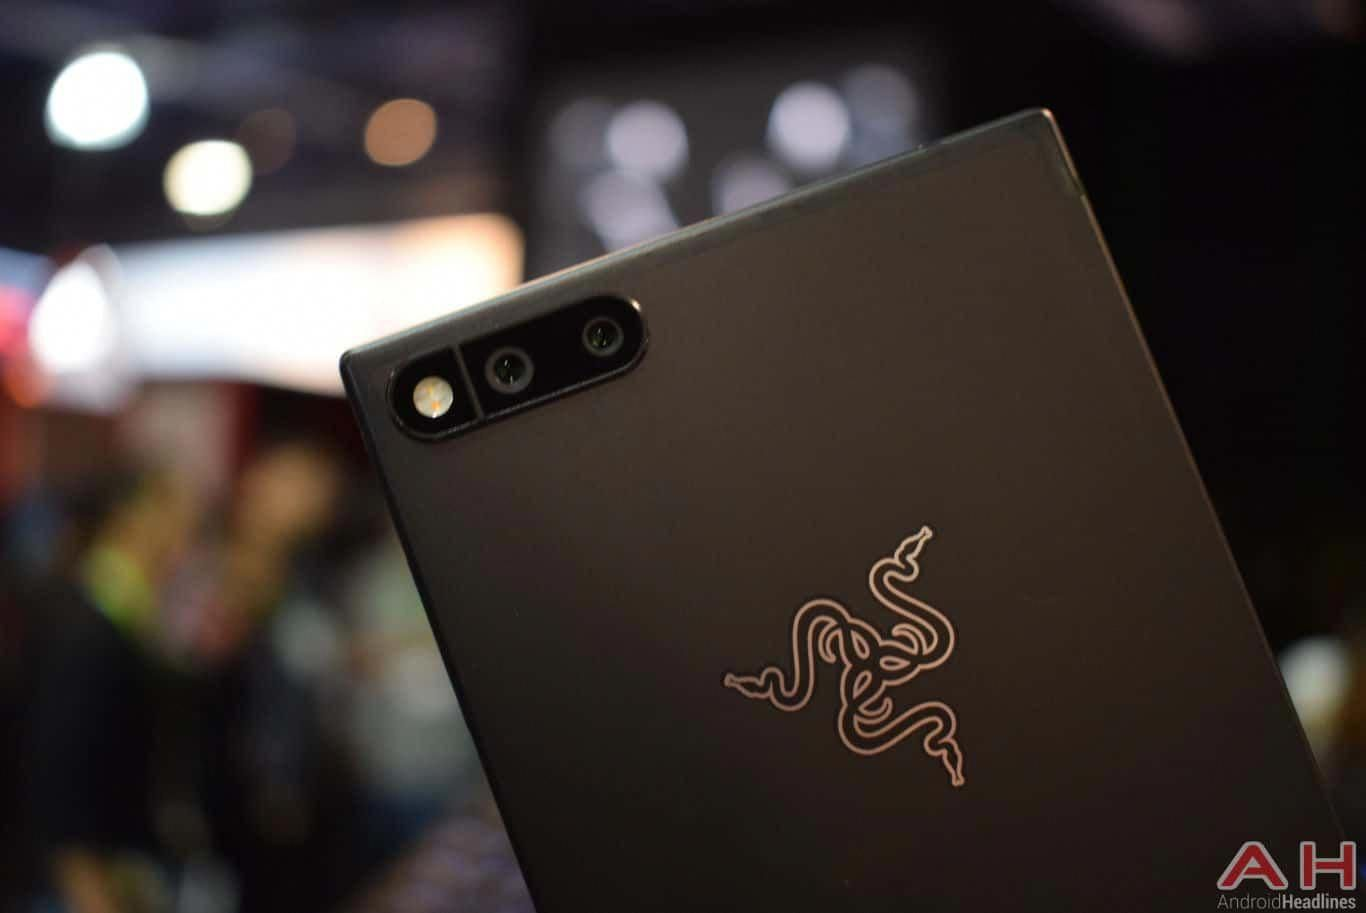 Razer Phone Update For Camera & Security Is Rolling Out Now